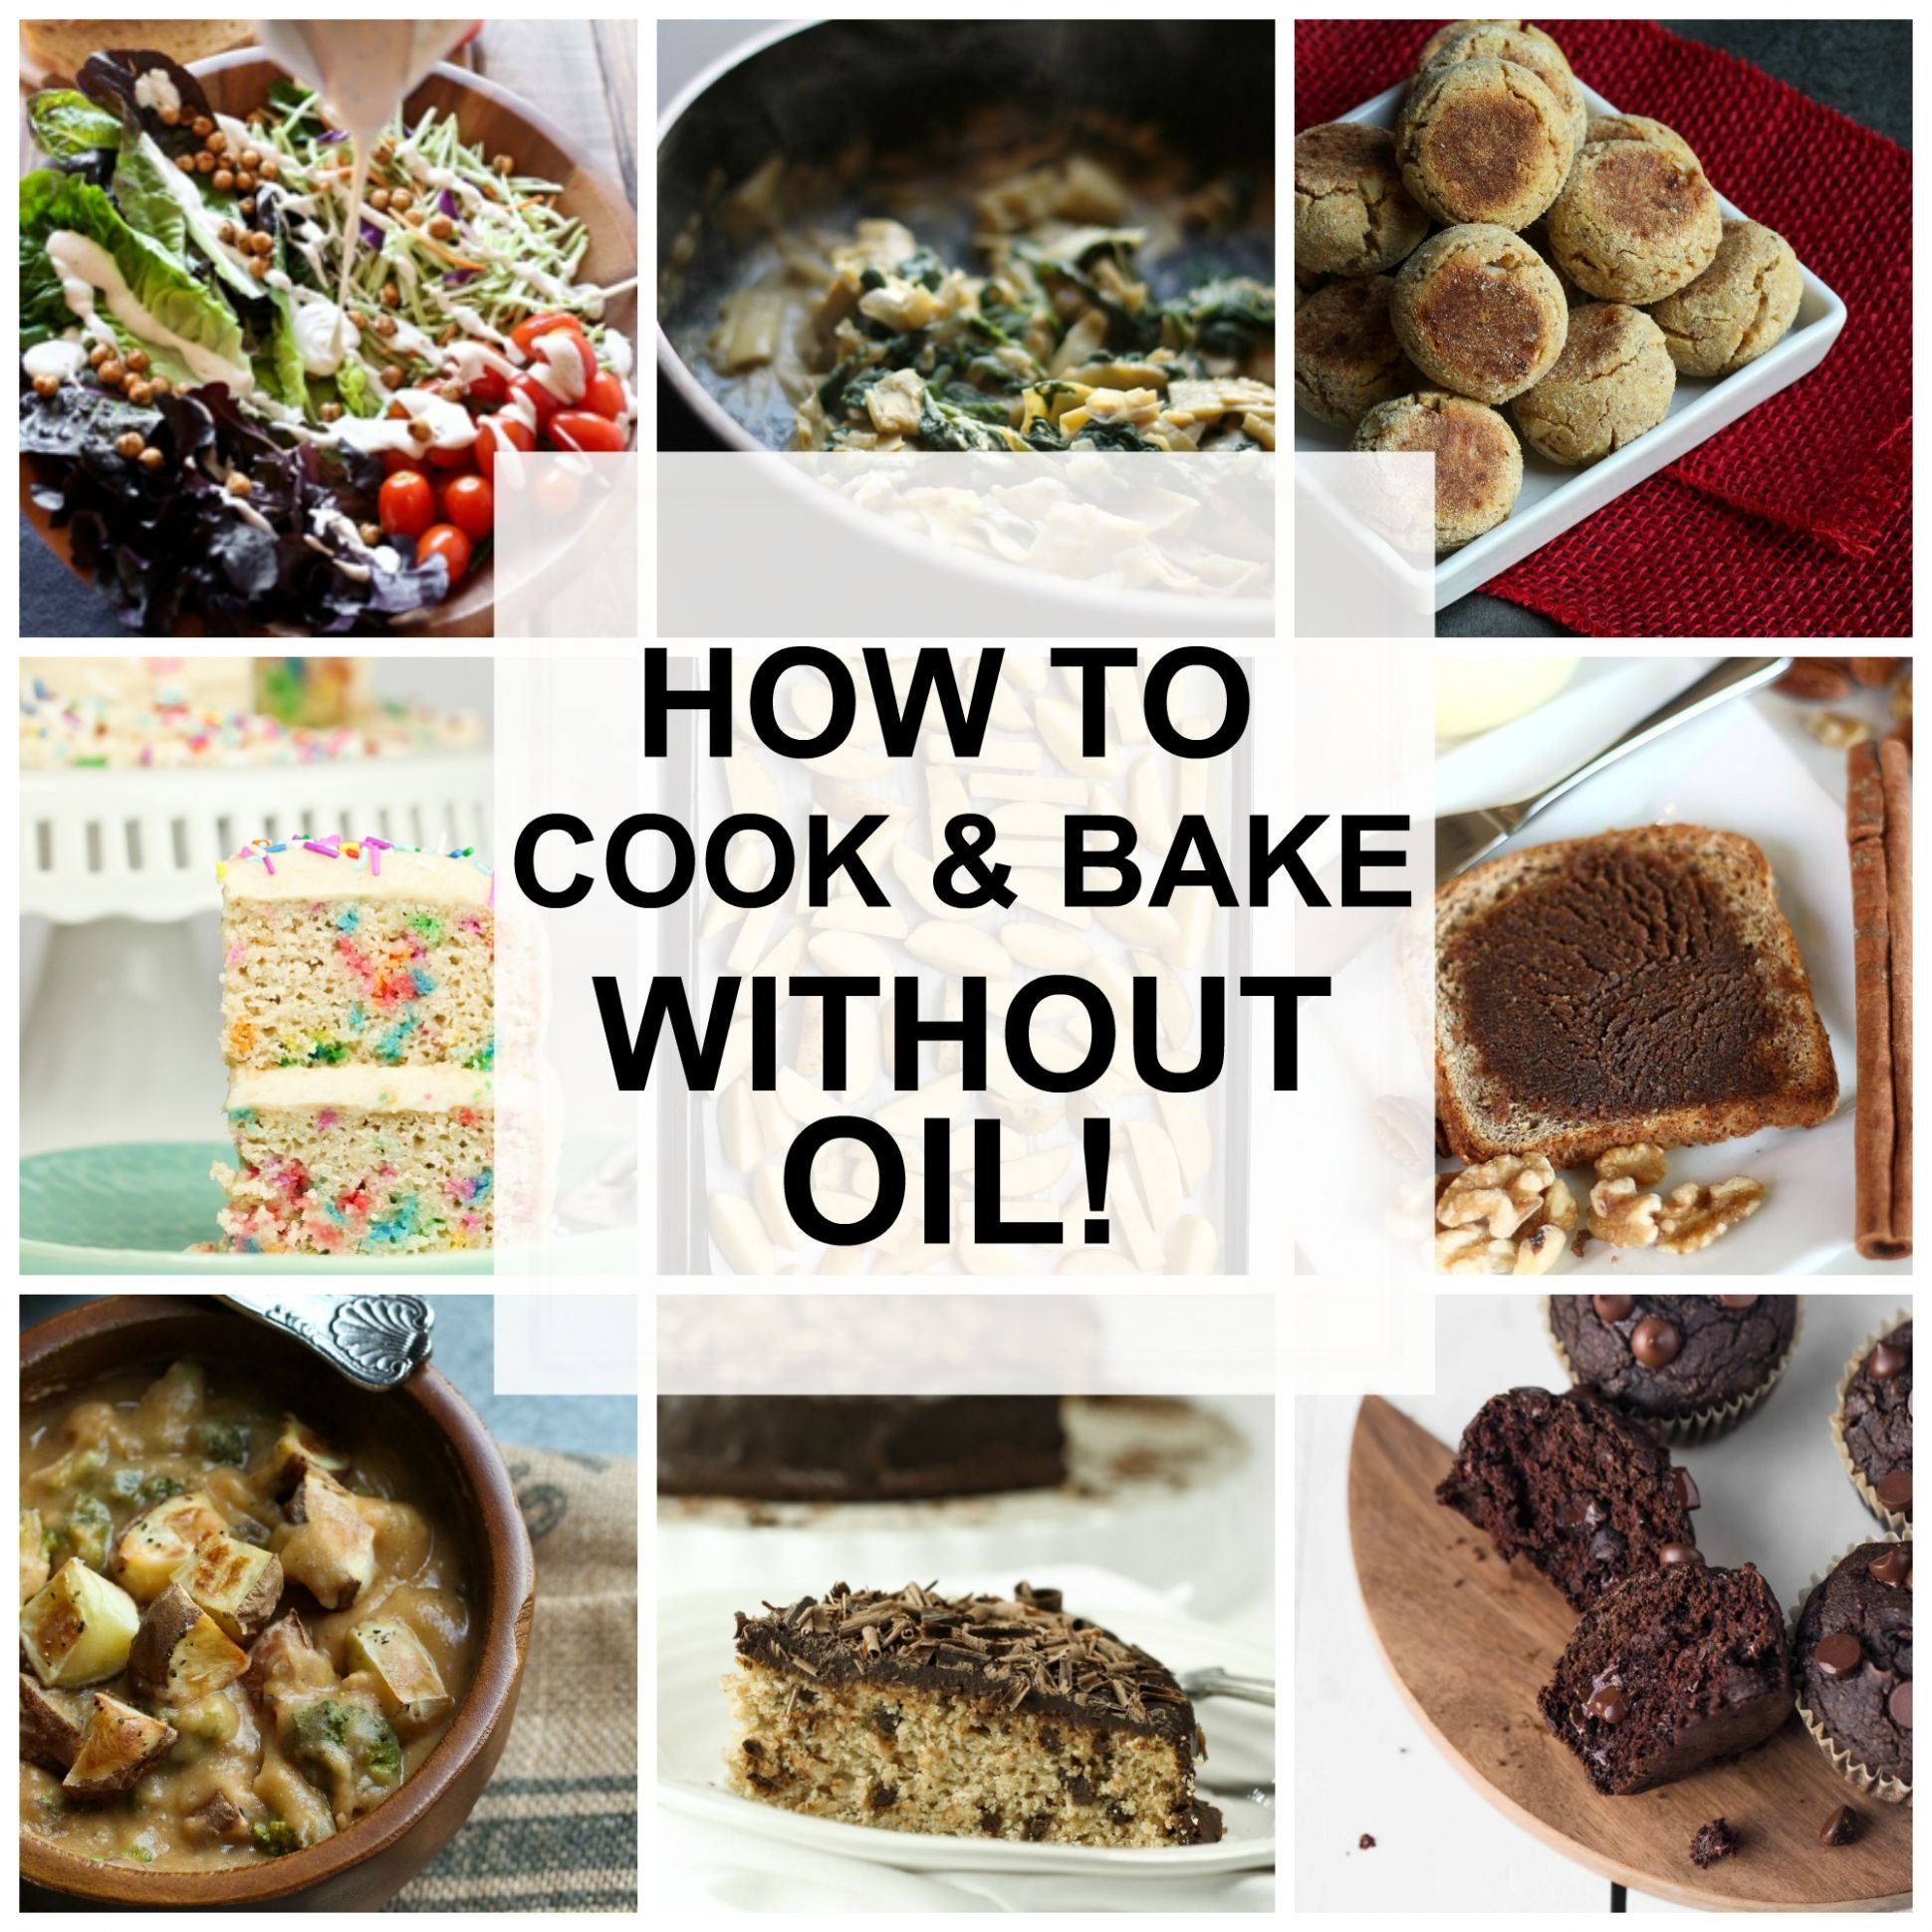 How to Cook and Bake Without Oil - The Vegan 12 - Zero Oil Recipes For Weight Loss